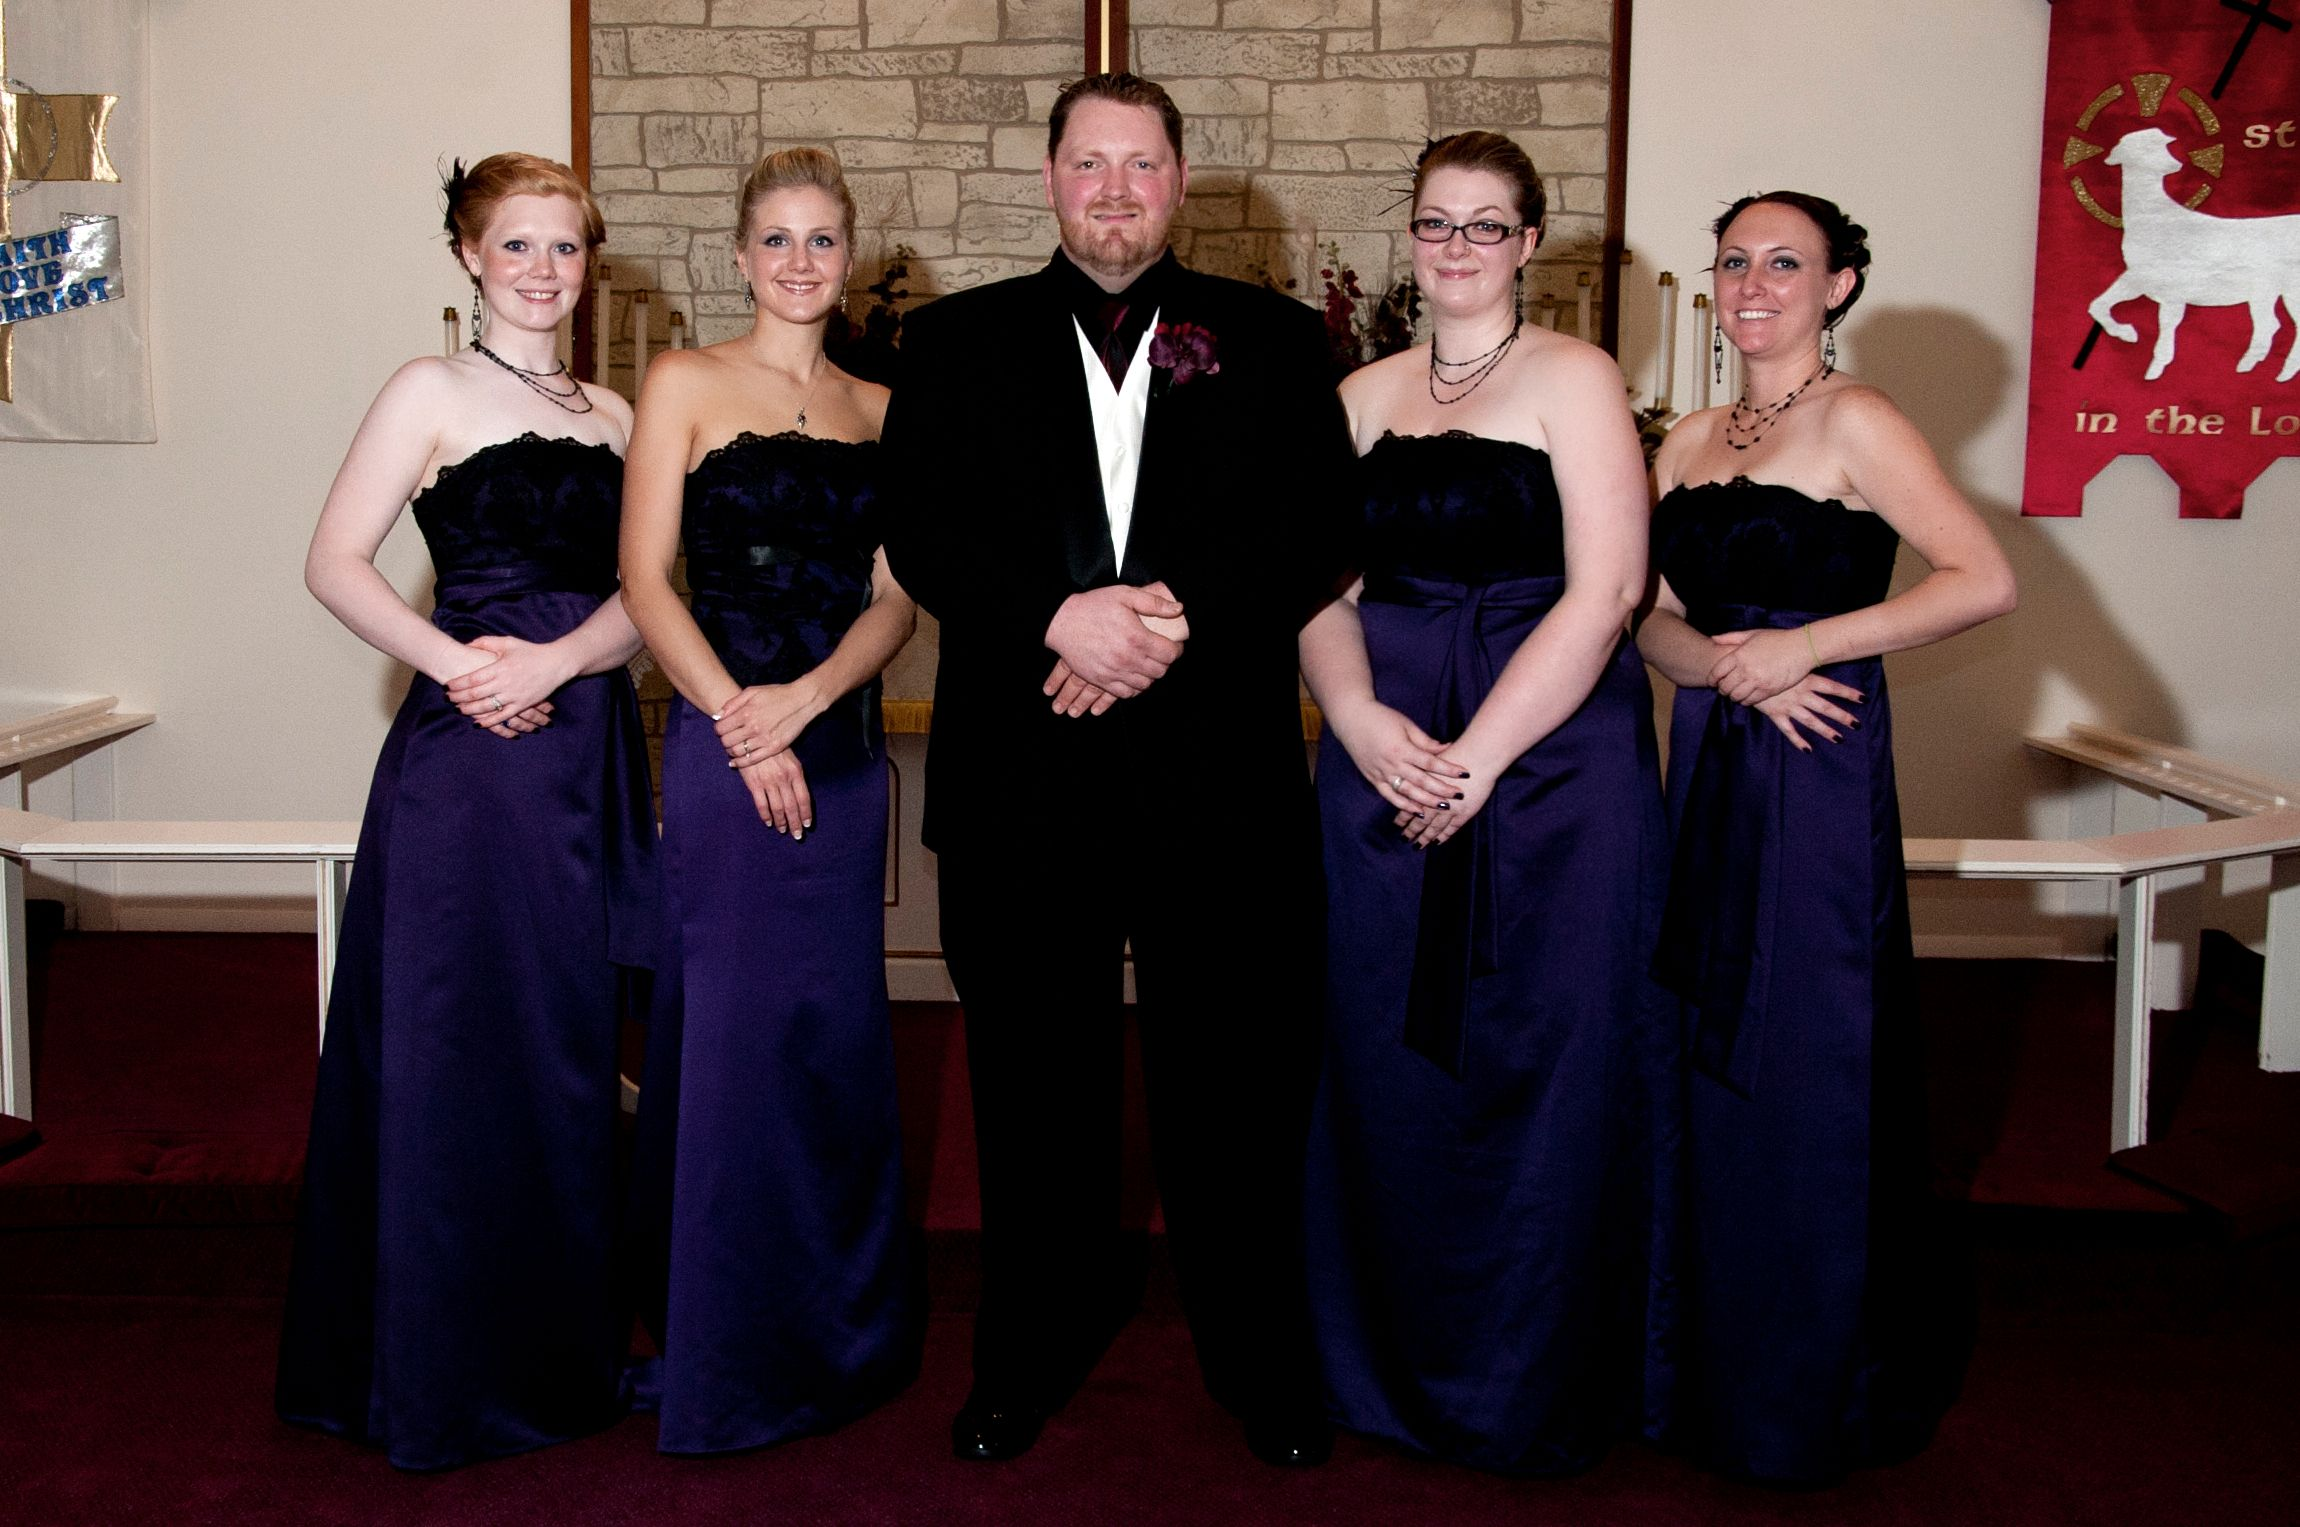 my hubby and girls